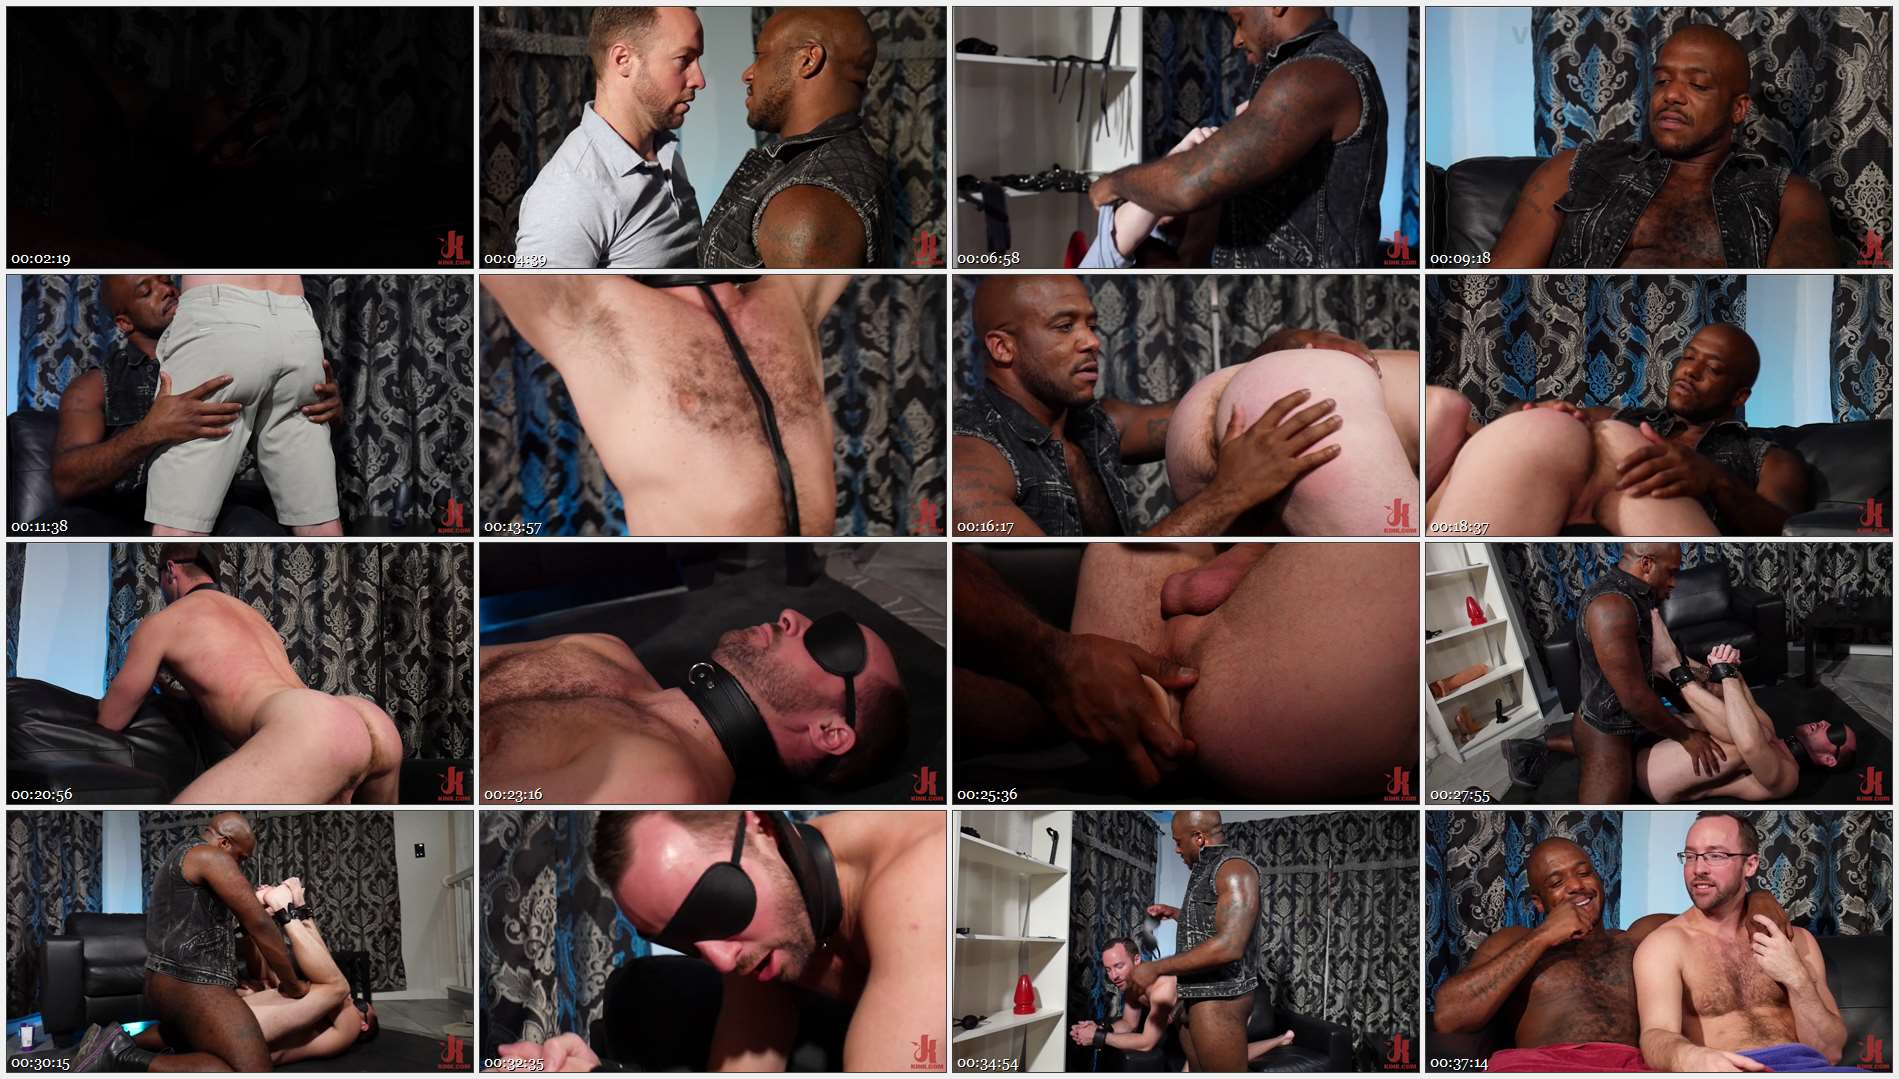 Micah Martinez, – Micah Martinez and Alex Hawk: The Hot Electrician